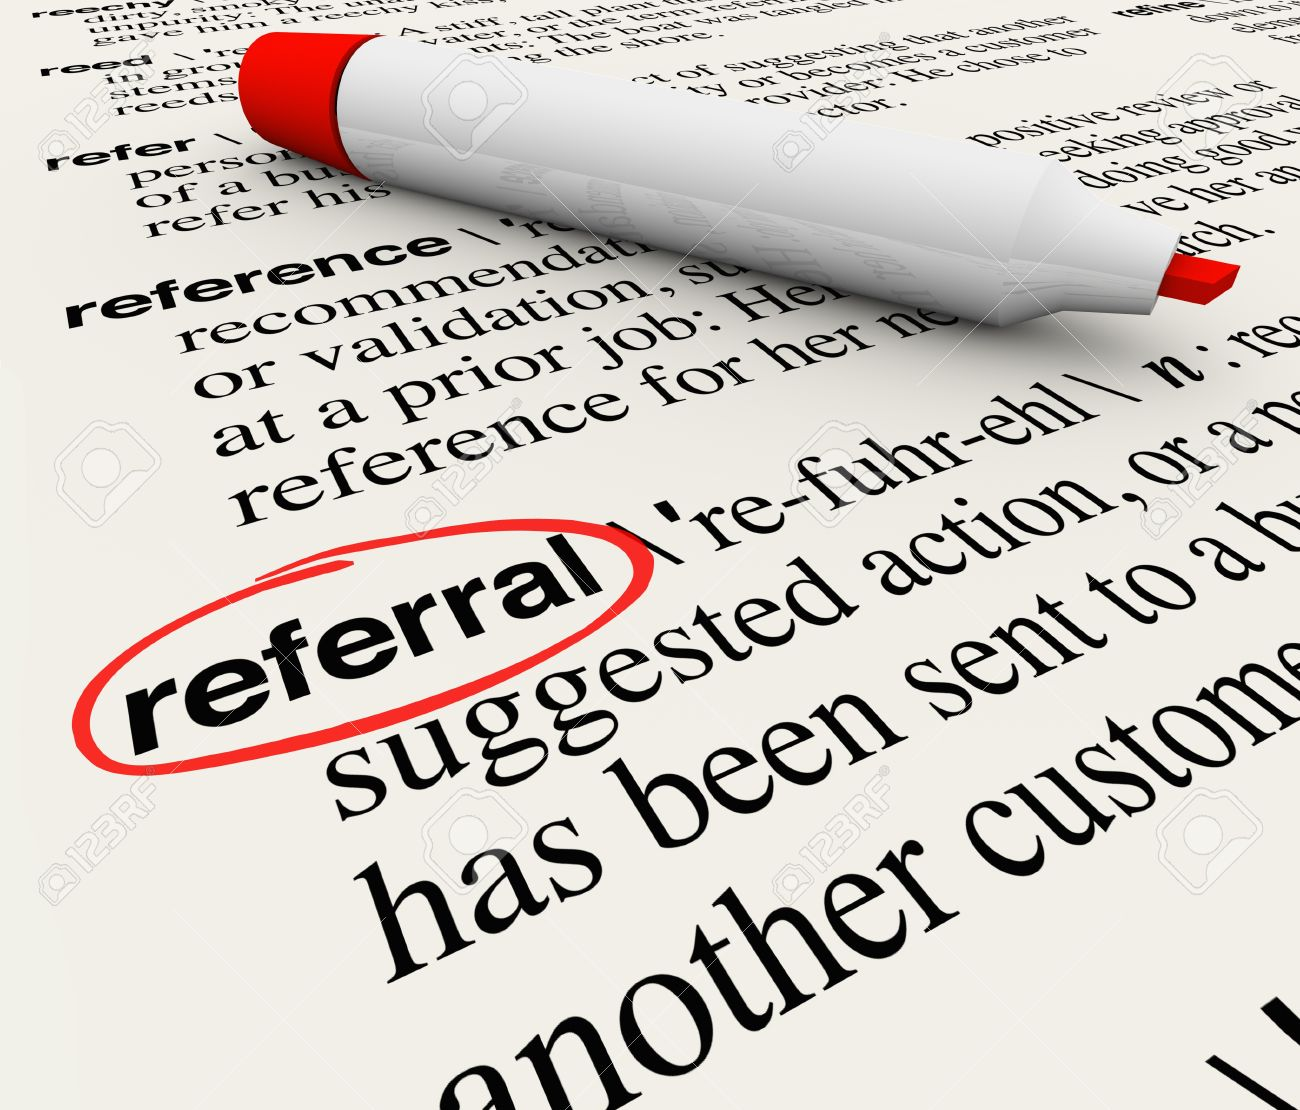 the word referral circled in a dictionary showing its definition stock photo the word referral circled in a dictionary showing its definition as a reference or receommendation by a customer or employer